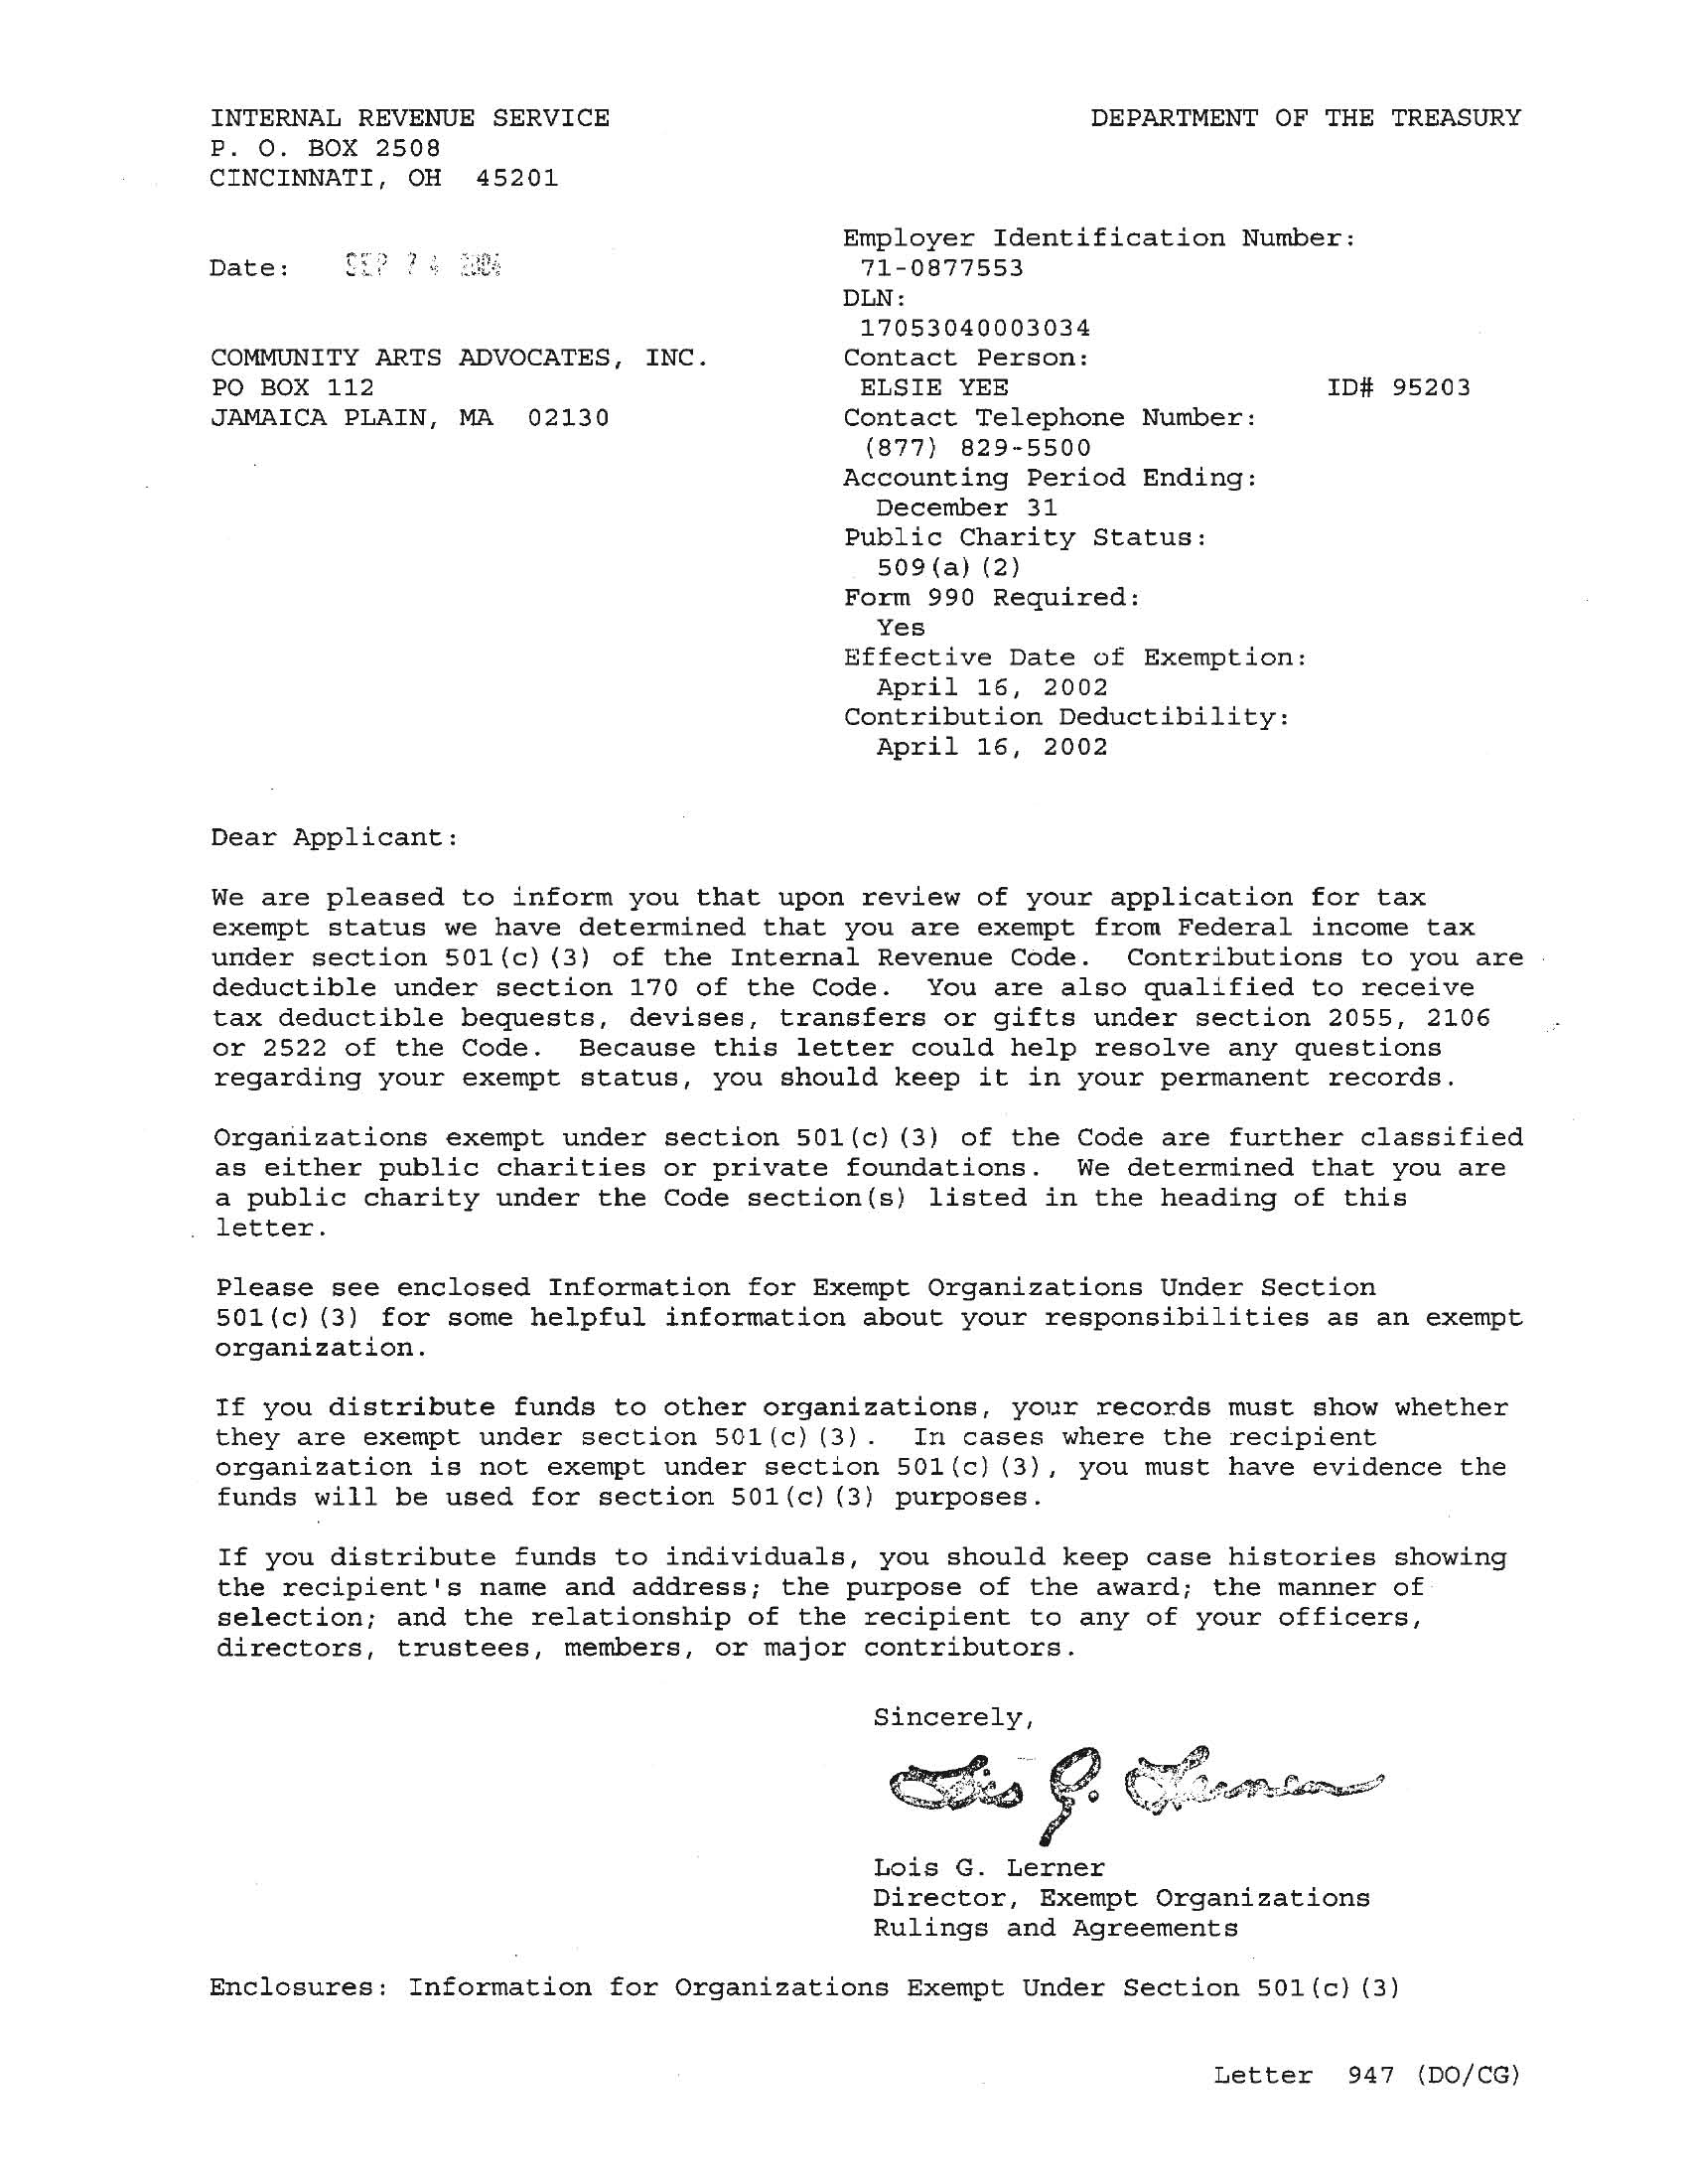 internal revenue service determination letter